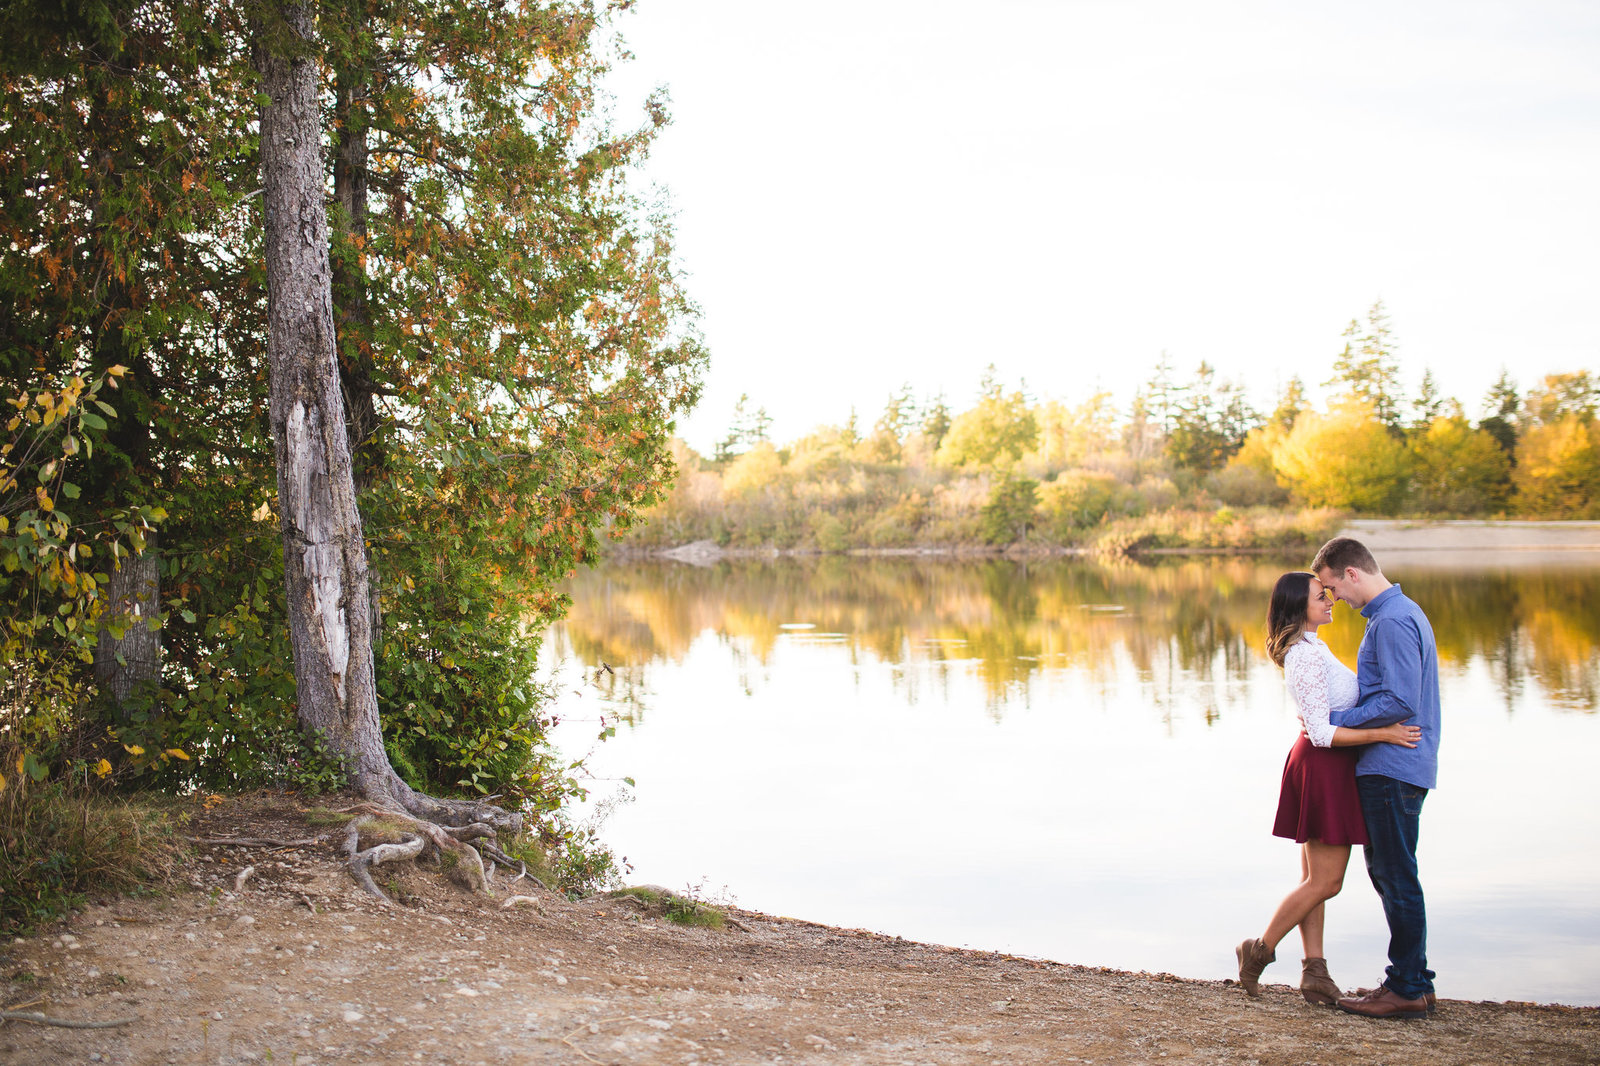 Saint John Engagement Photos by Jordan & Judith - Saint John NB Wedding Photographers and Filmmakers22